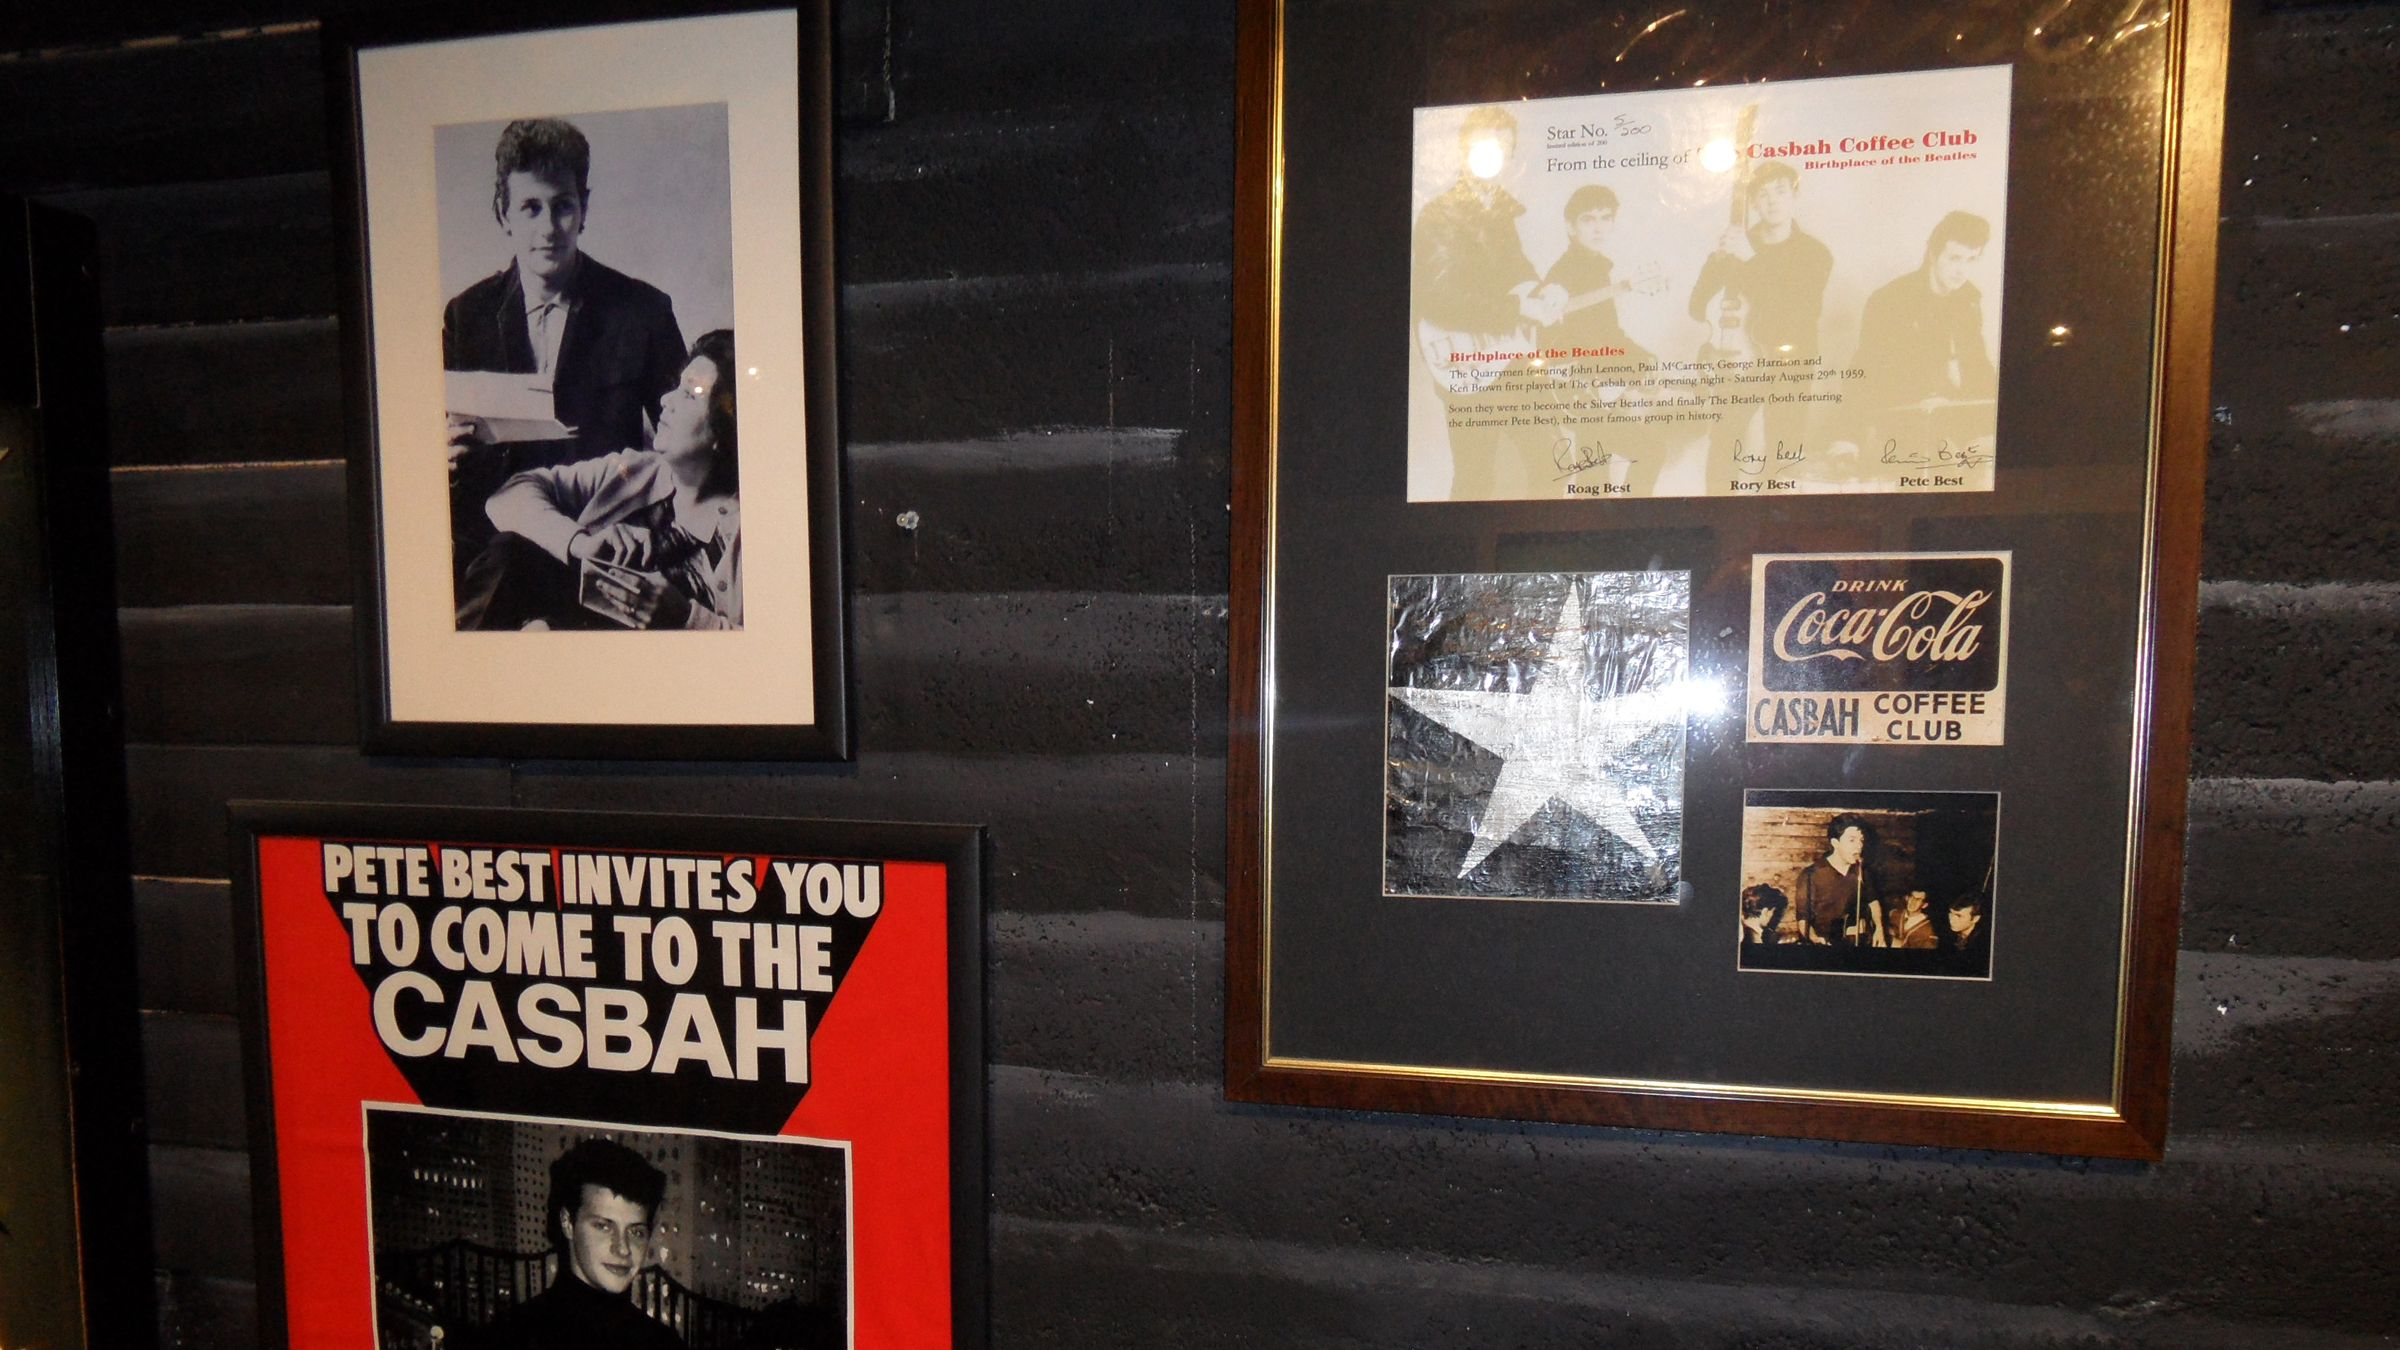 musician articles and photography on the walls in London